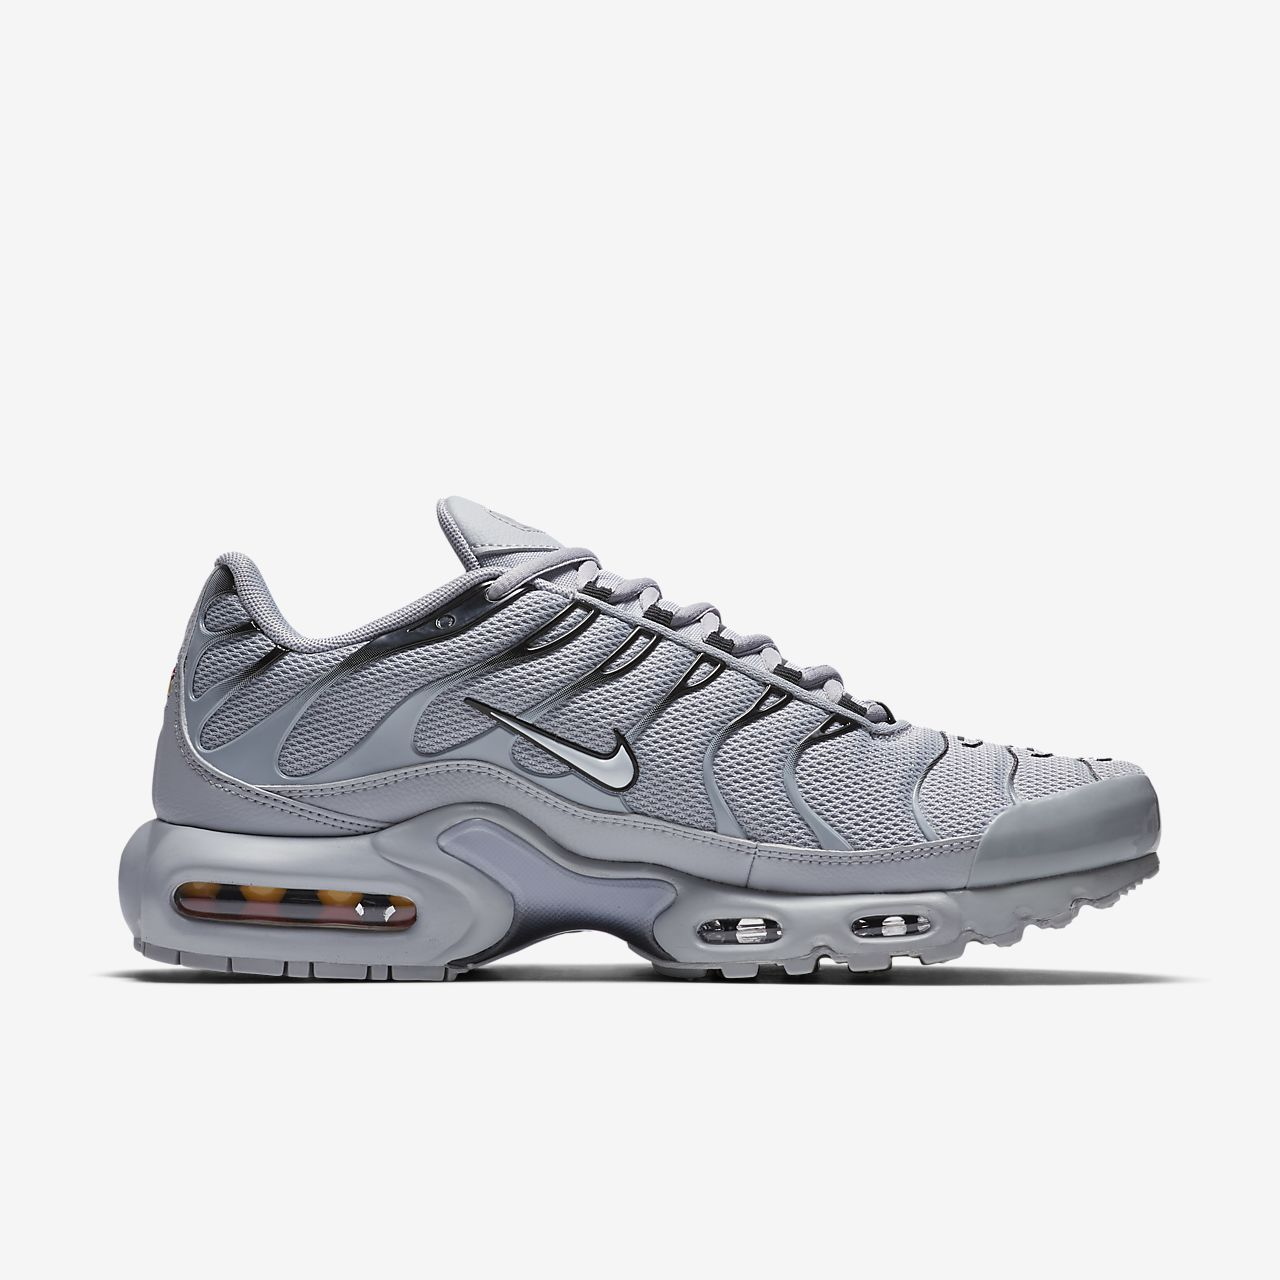 ... Chaussure Nike Air Max Plus pour Homme